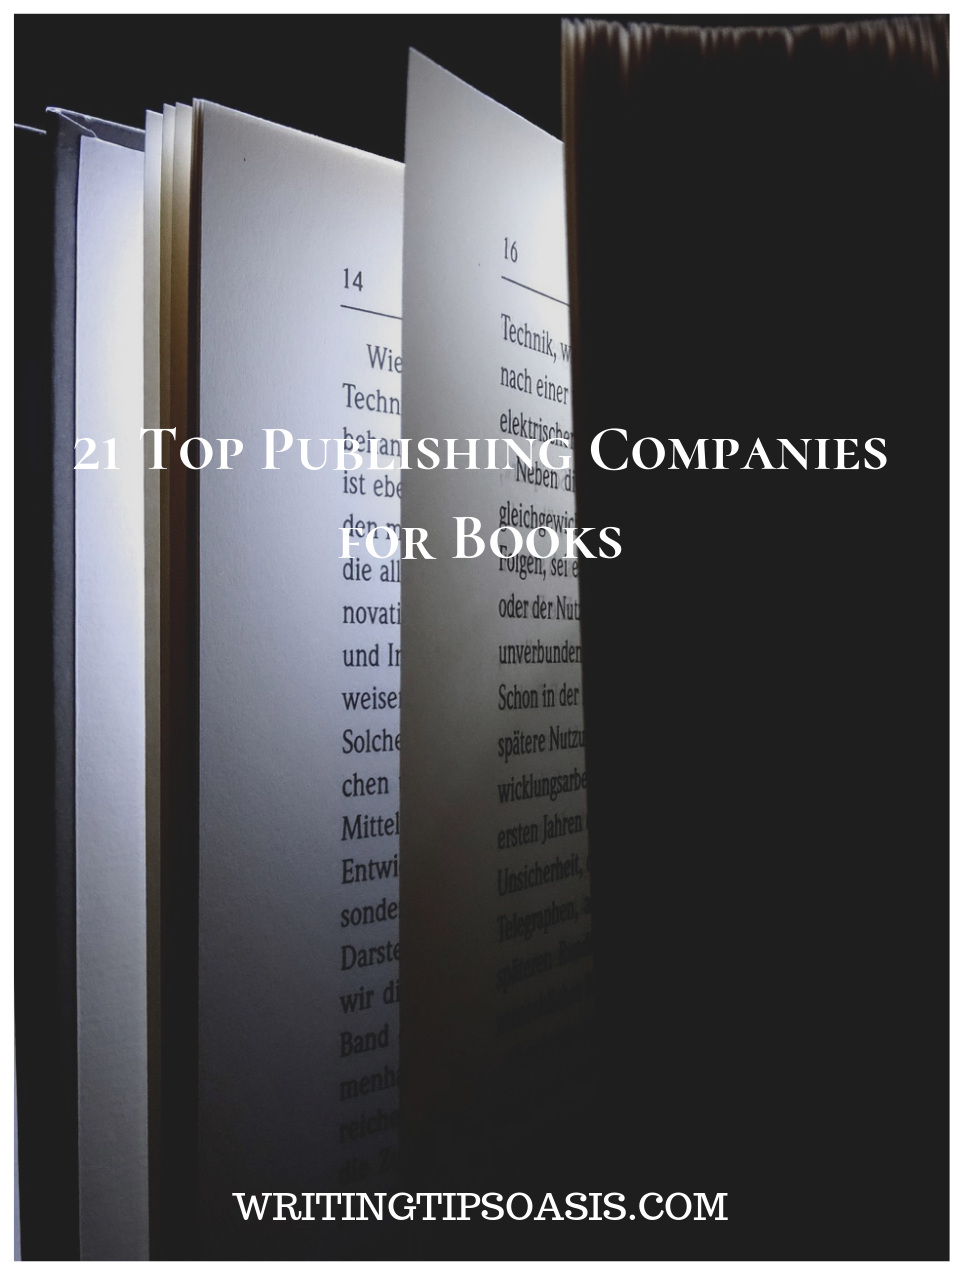 best publishing companies for books